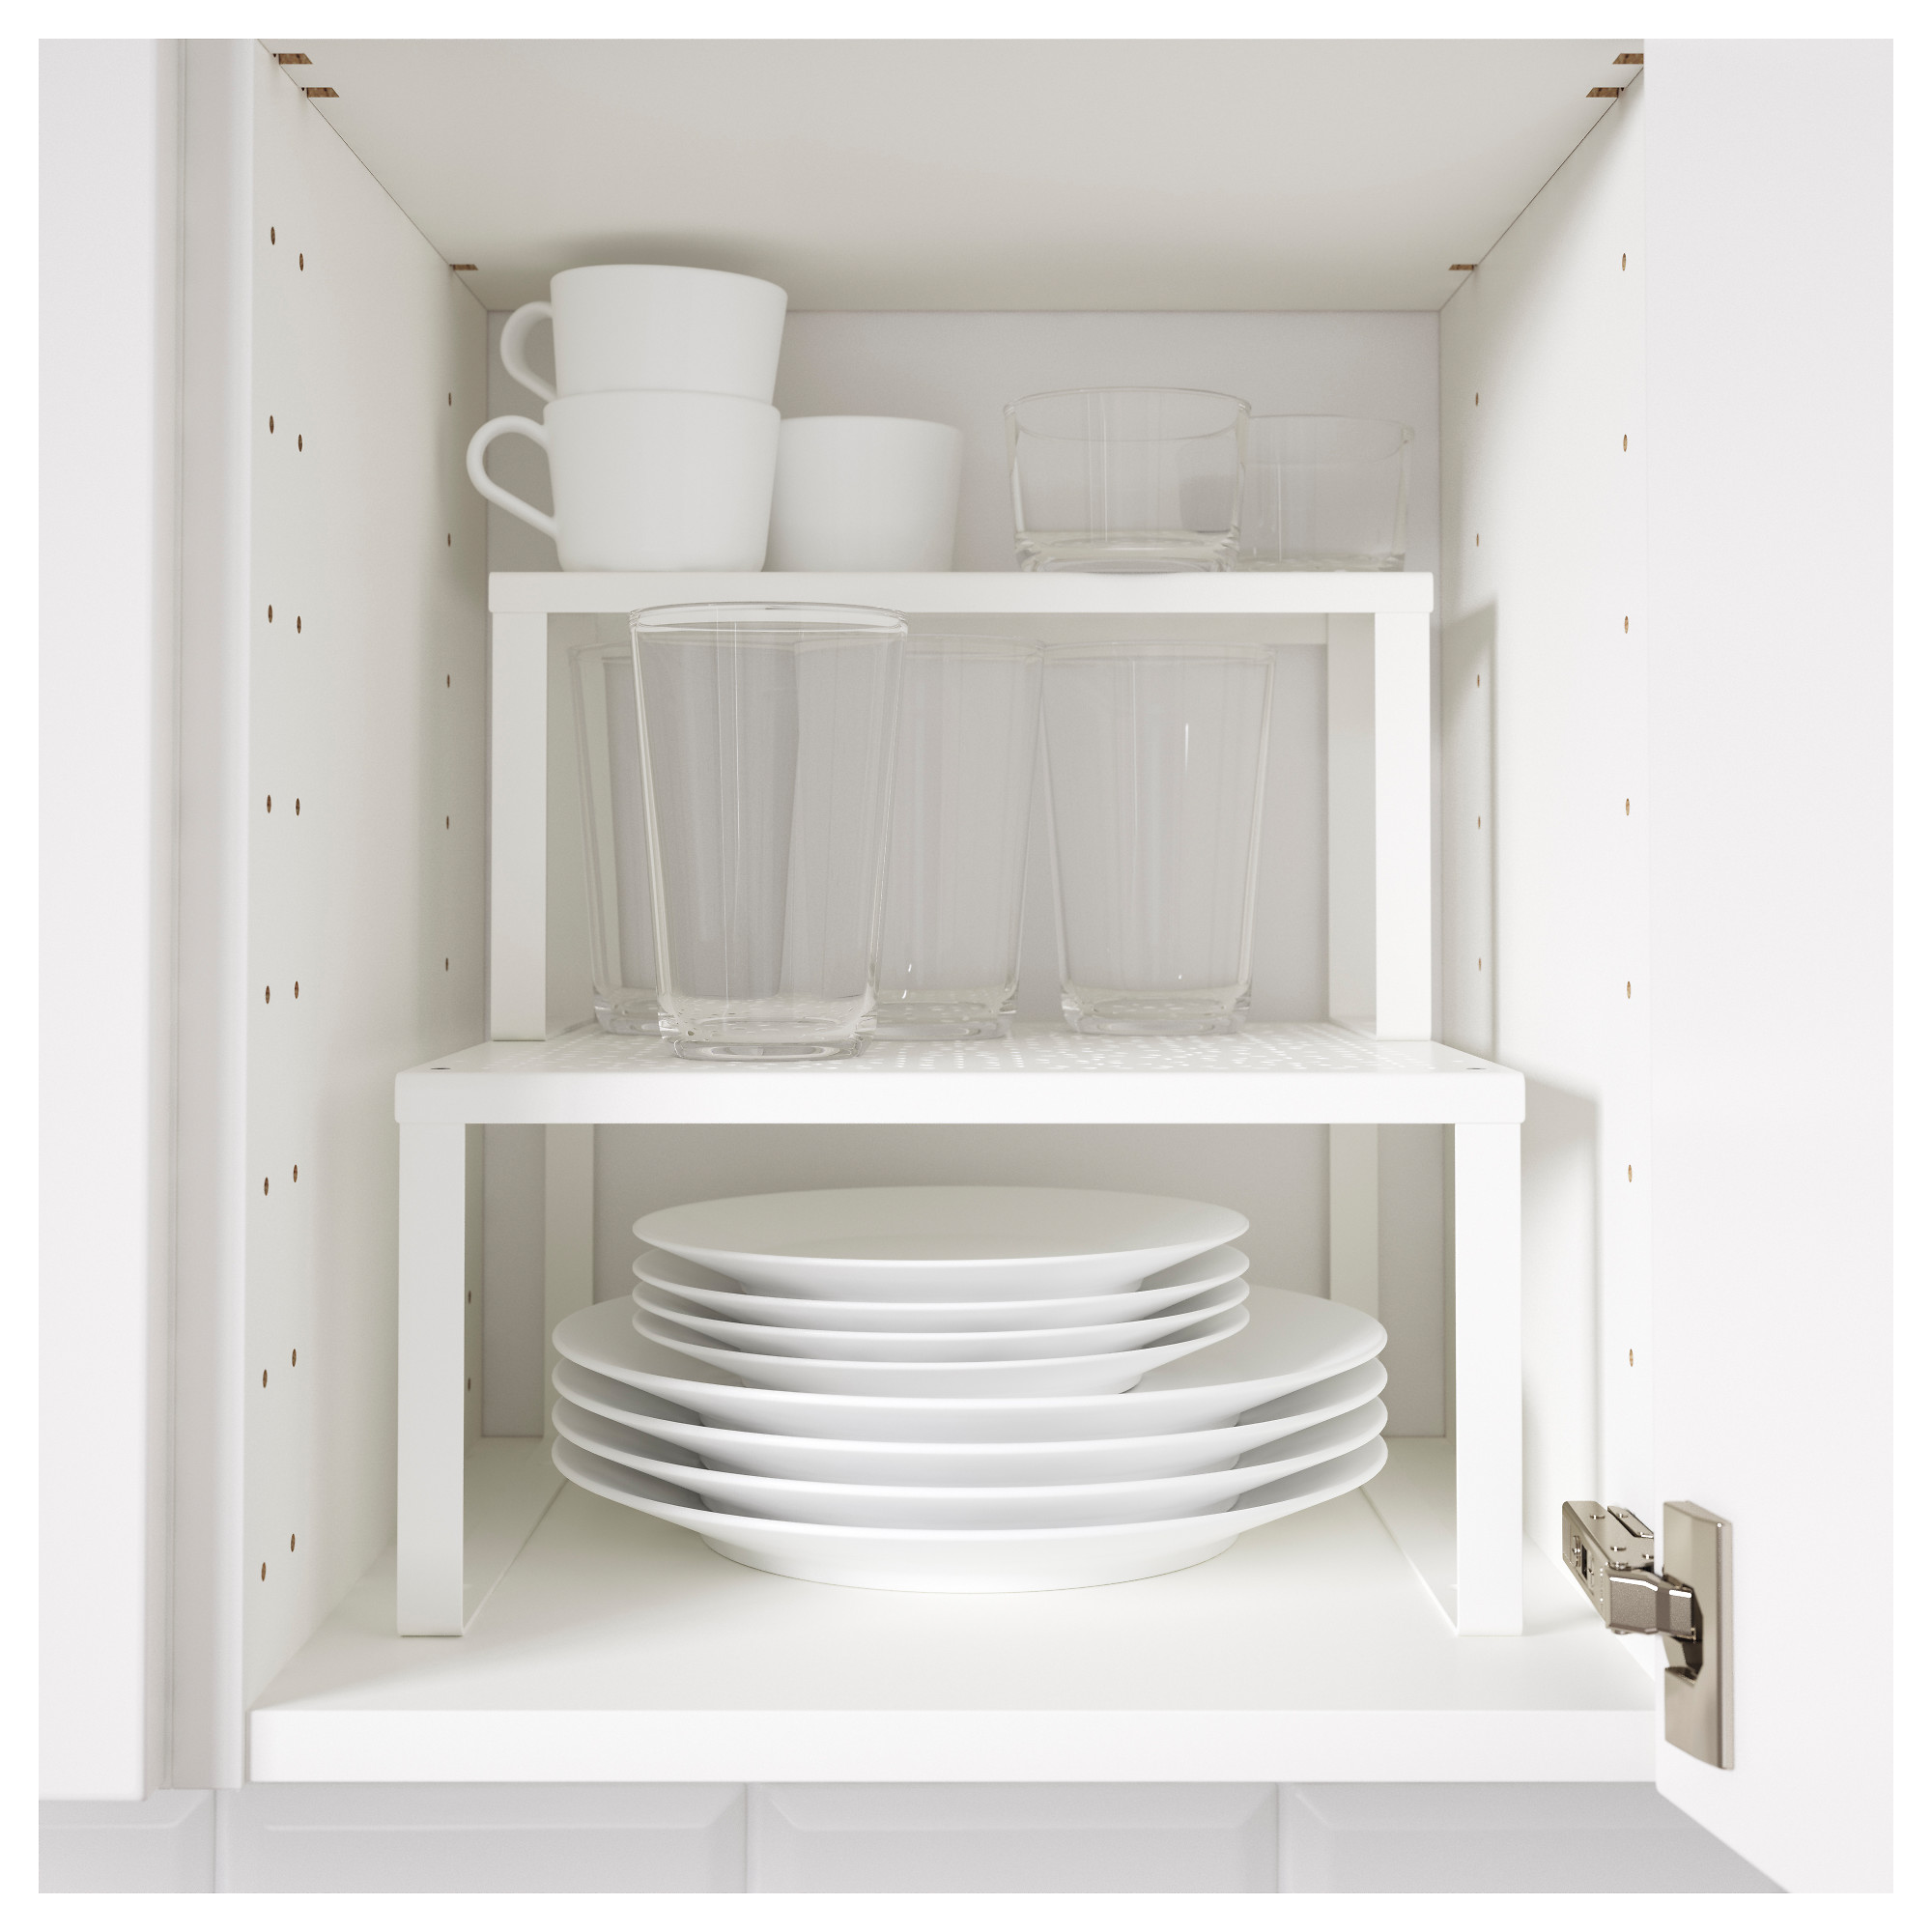 White Kitchen Shelf variera shelf insert - ikea